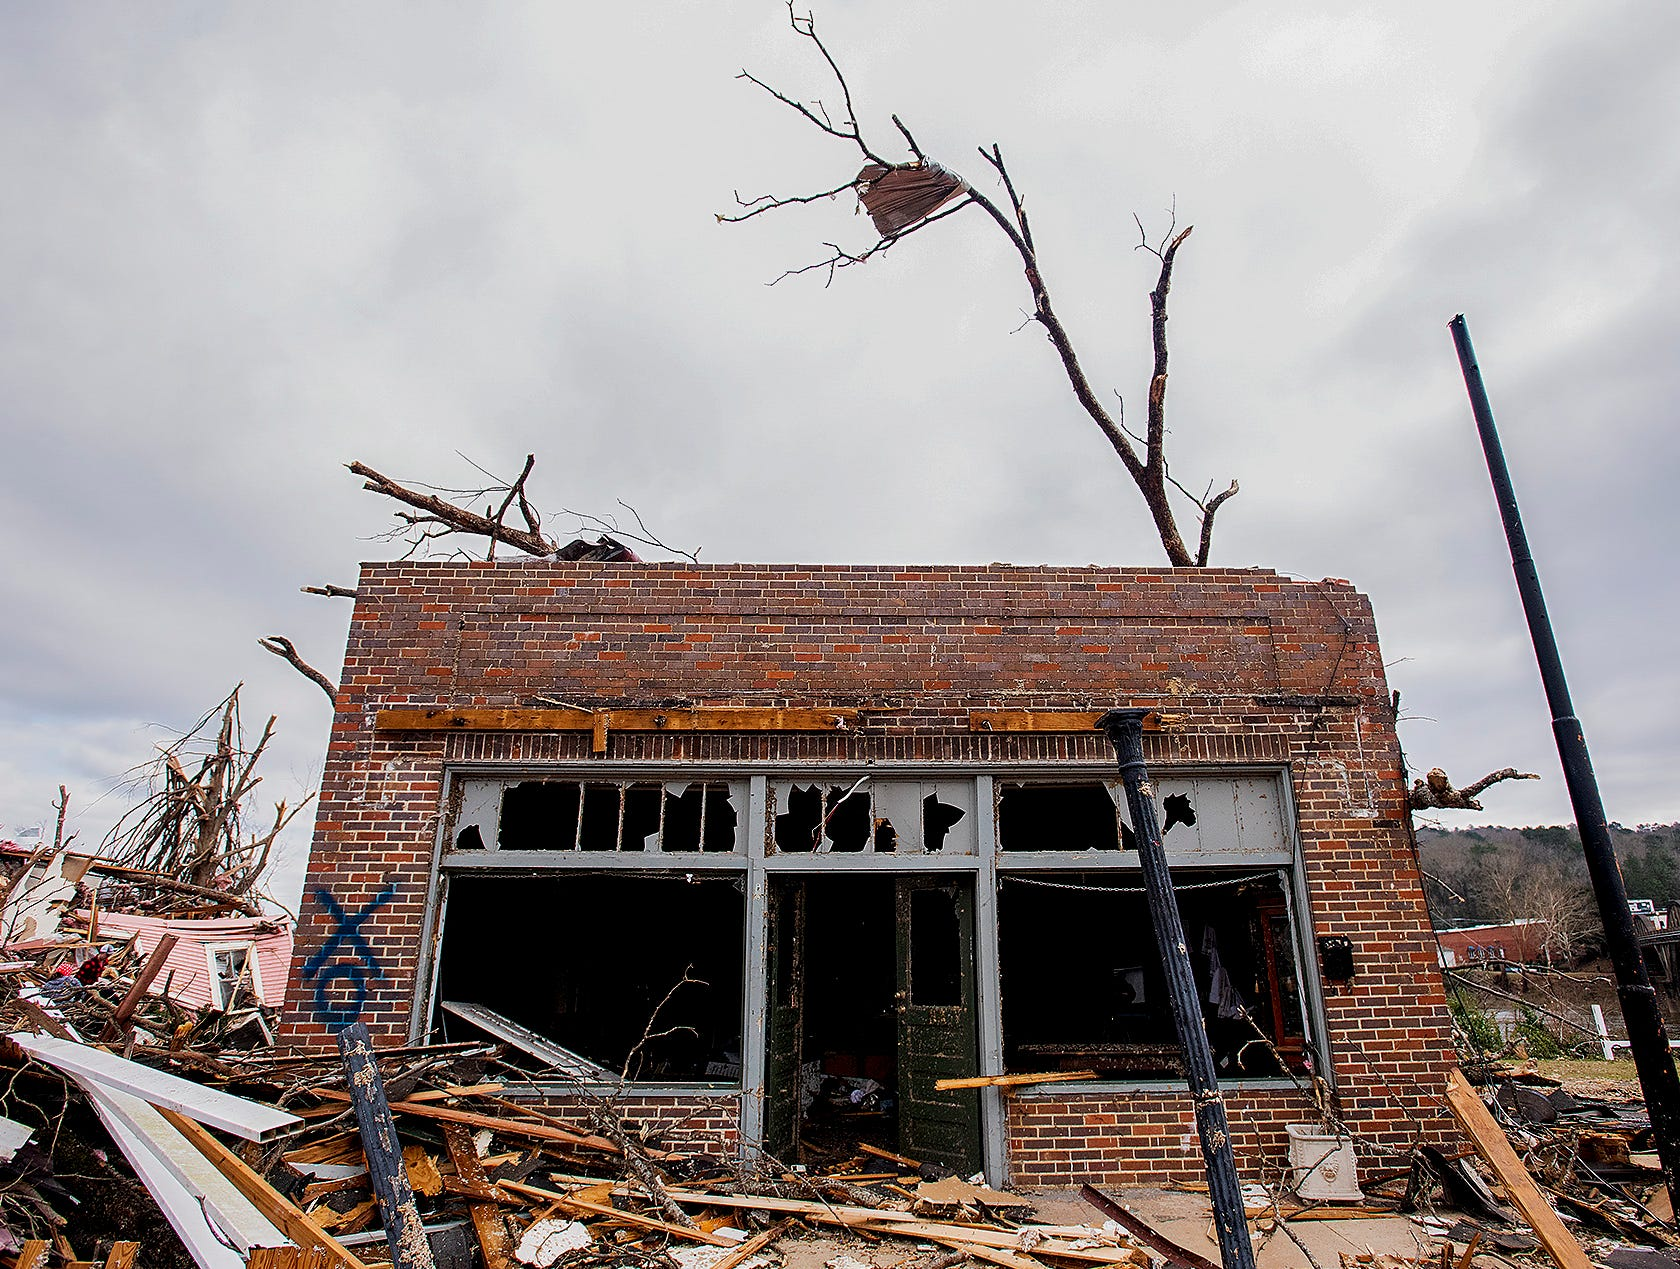 A damaged building on Sunday January 20, 2019, after a tornado hit Wetumpka, Ala., on Saturday afternoon.